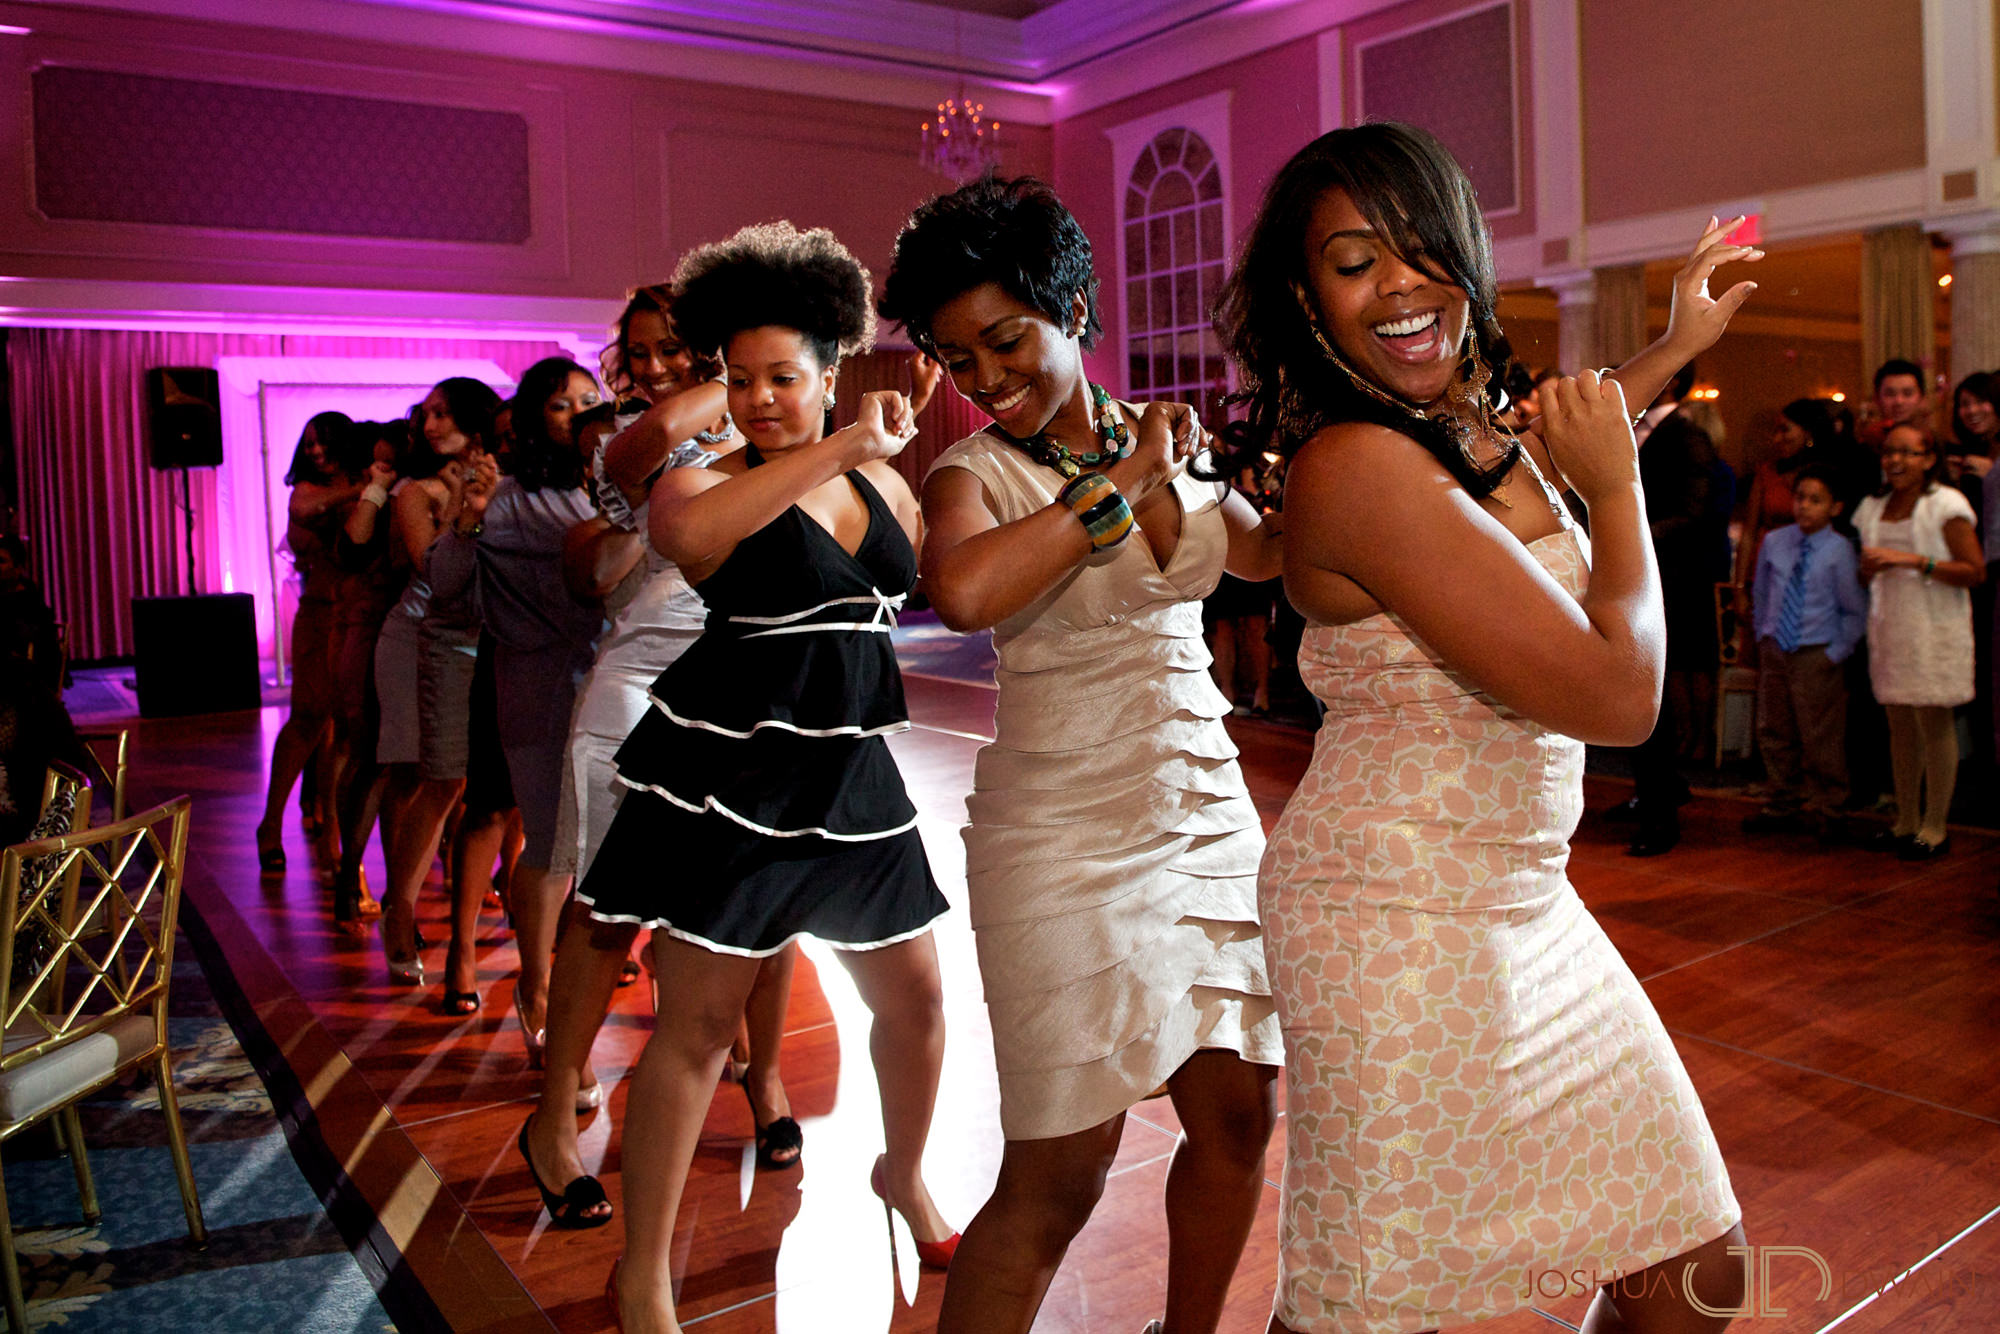 carol-shiloh-017-the-palace-somerset-new-jerseywedding-photographer-joshua-dwain-2011-11-25_cs_683